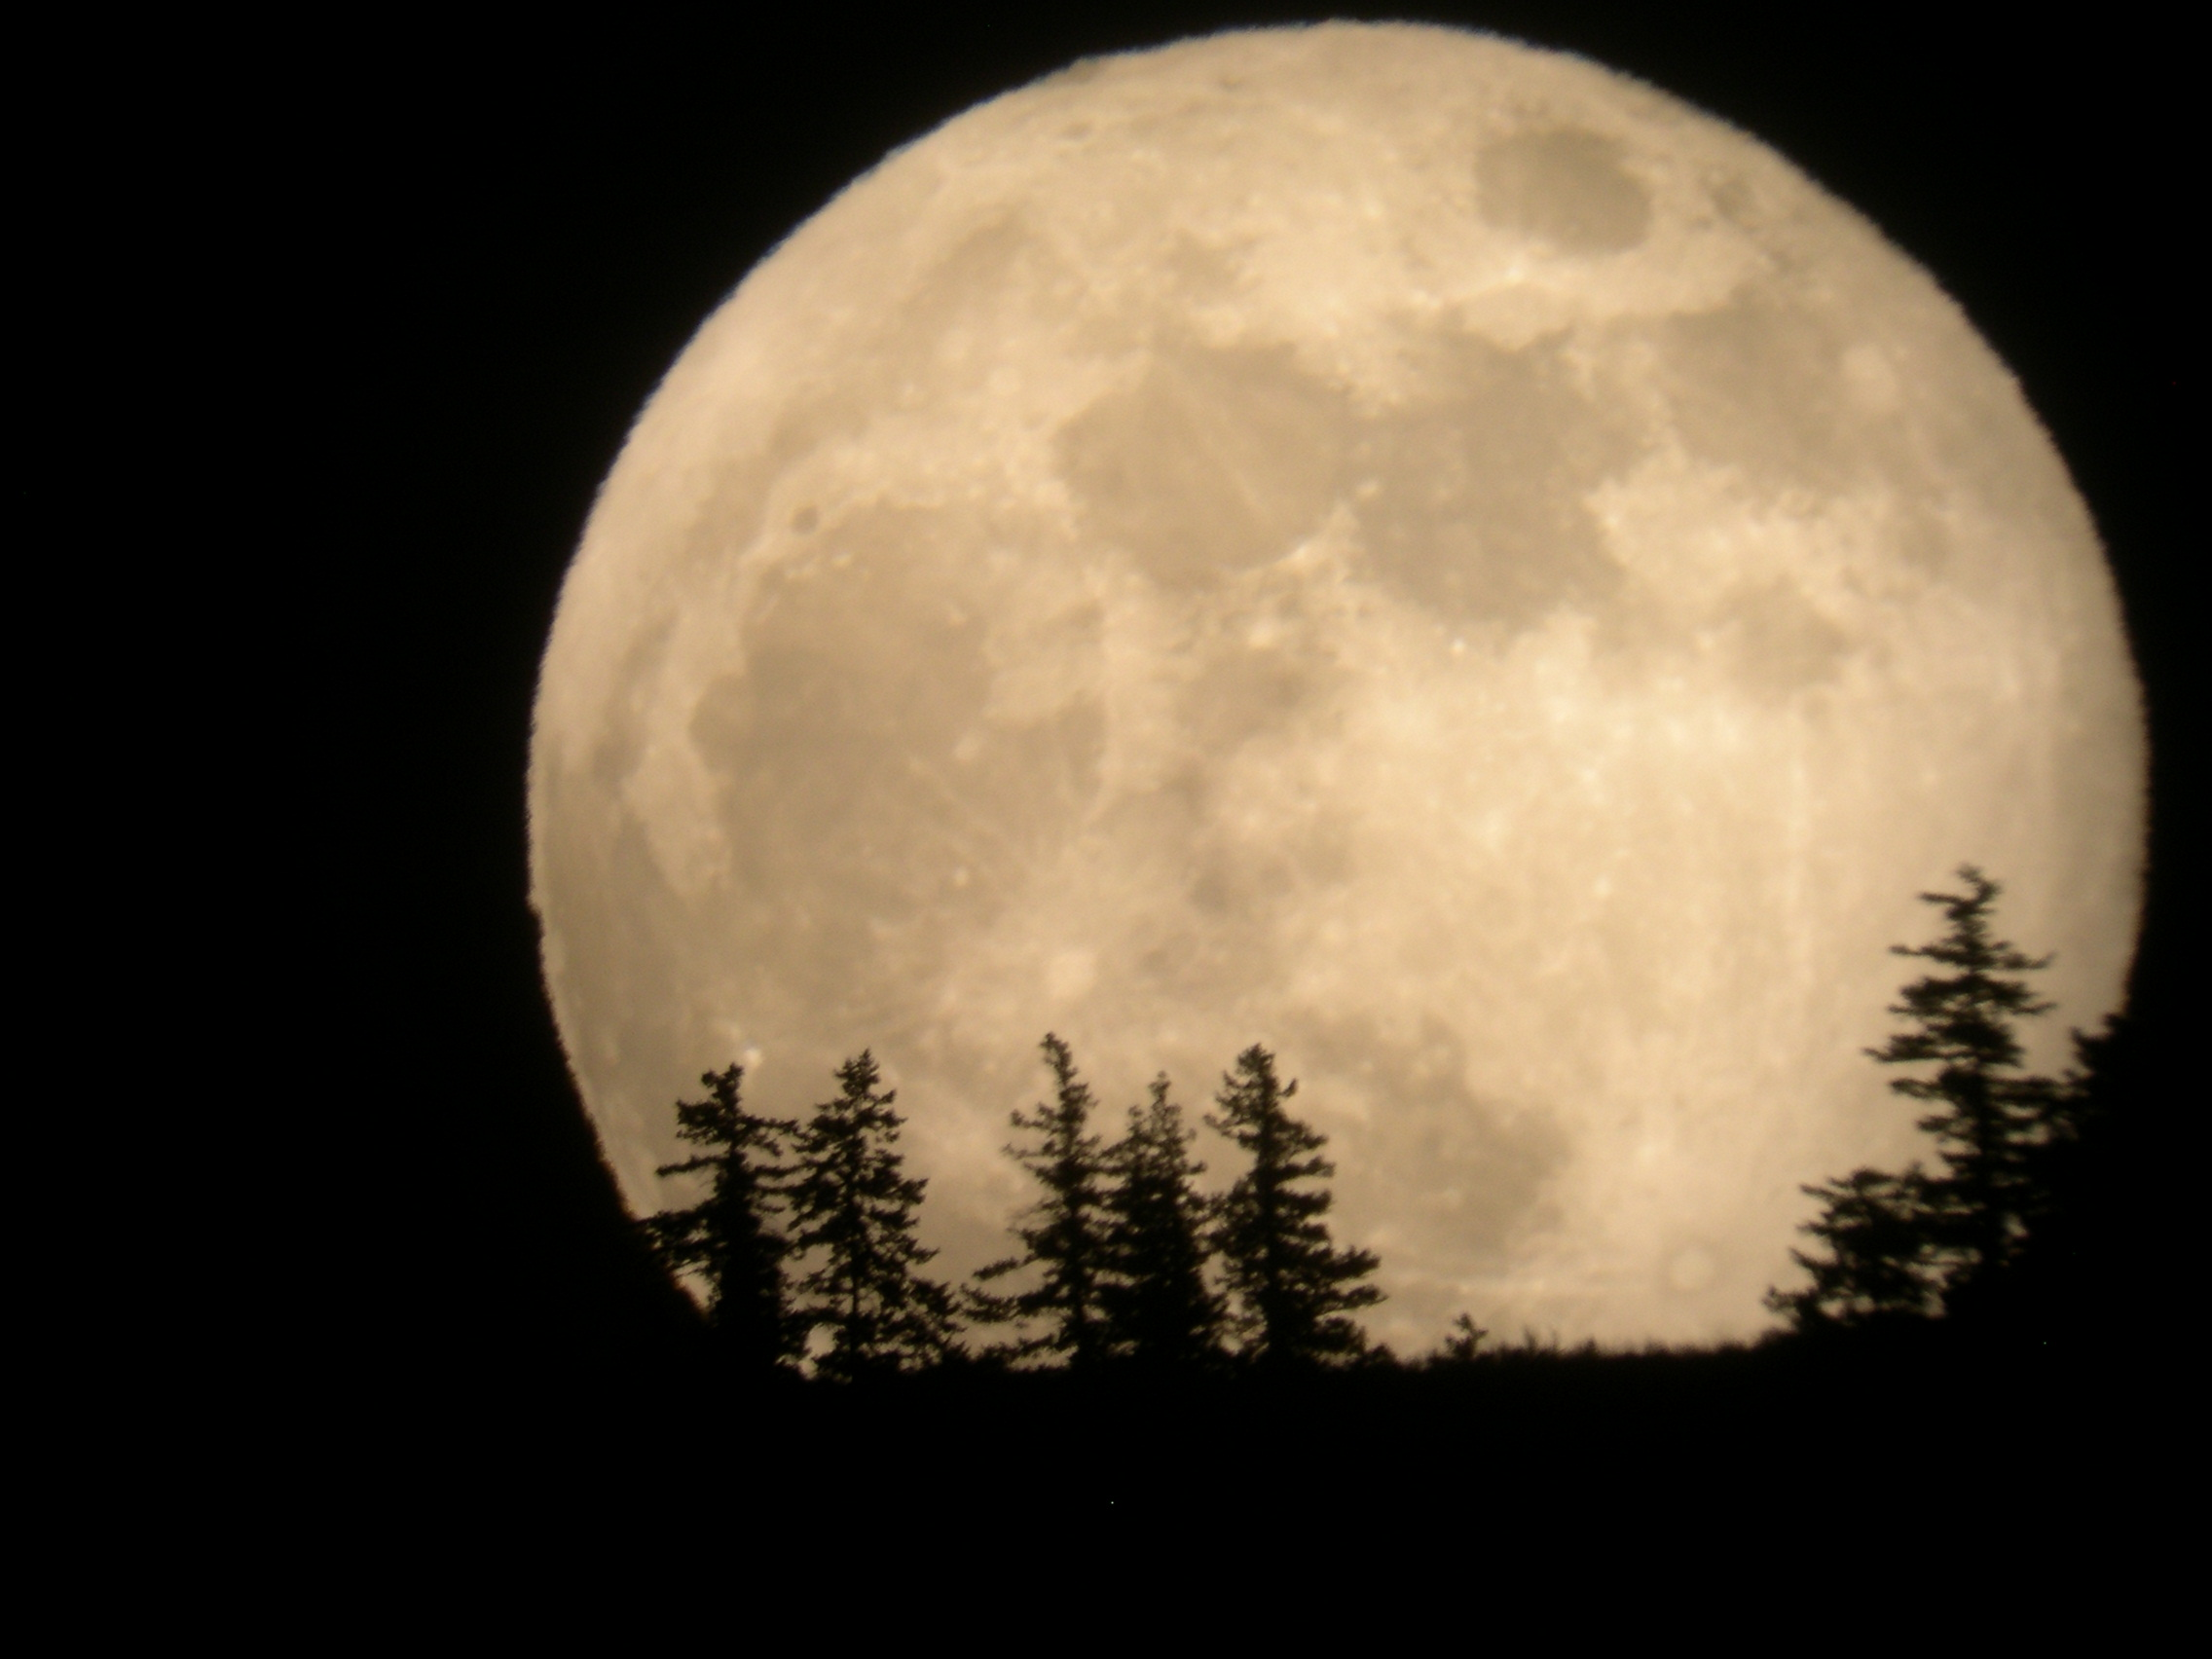 http://www.space.com/images/i/000/017/211/original/supermoon-may-2012-tim-mccord.jpg?1336303505